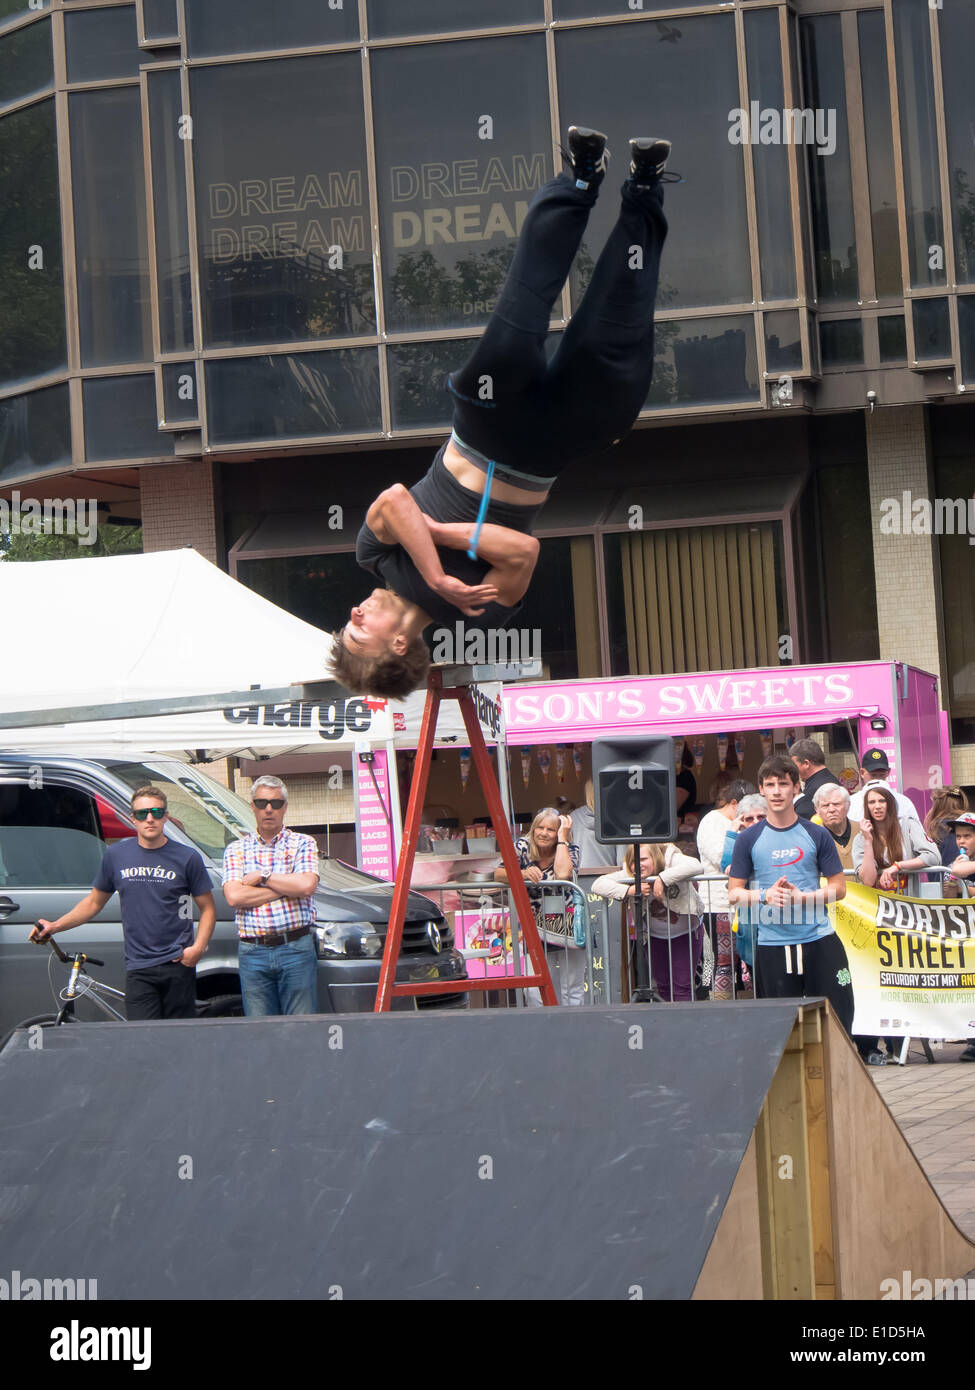 A free runner performs a twisting straight Somersault during the Portsmouth street games 2014 funded by the Portsmouth cultural trust - Stock Image